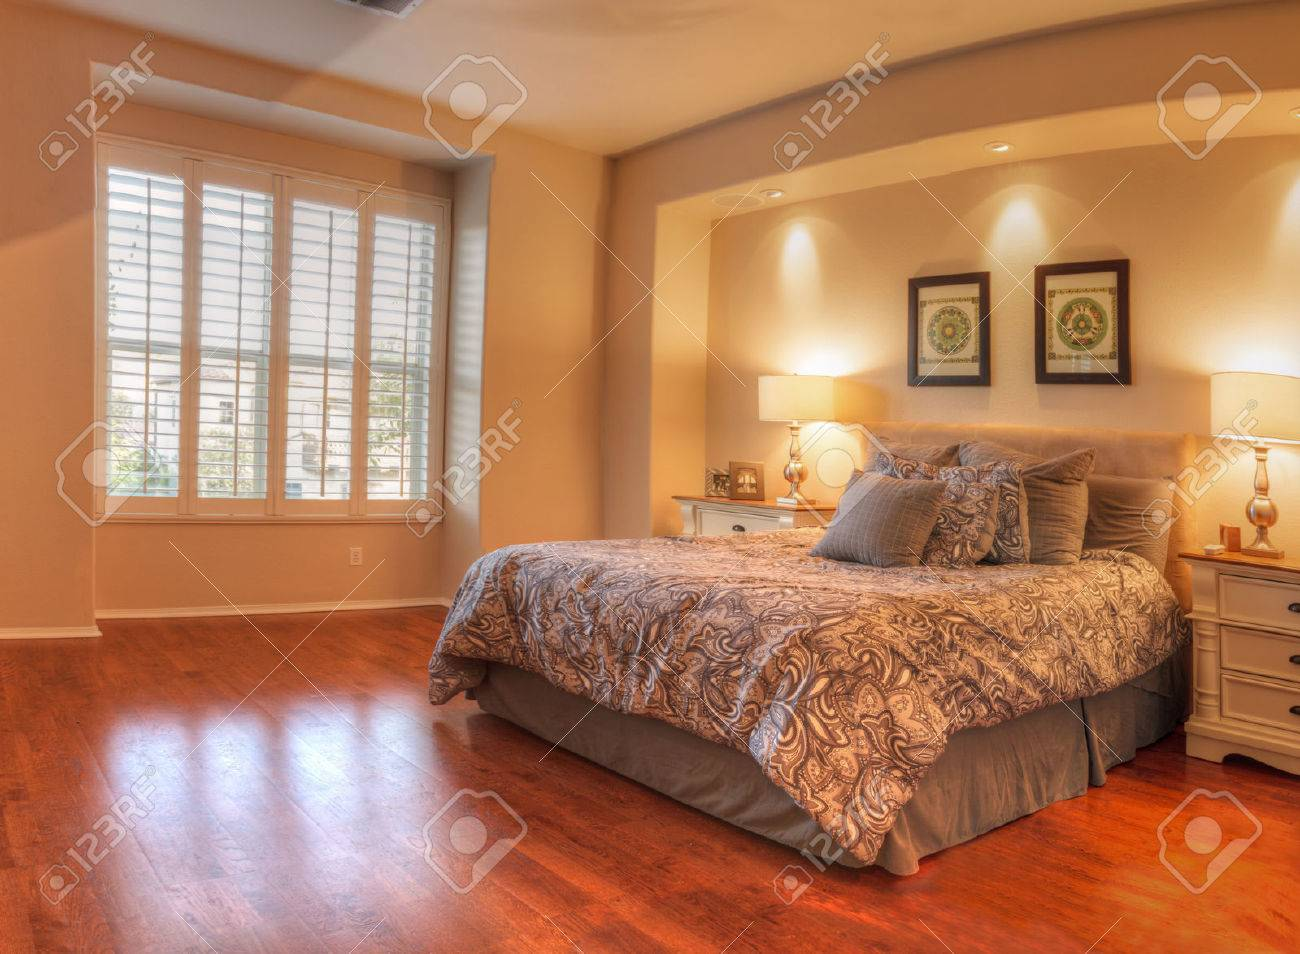 irvine ca usa august 19 2016 large master bedroom with